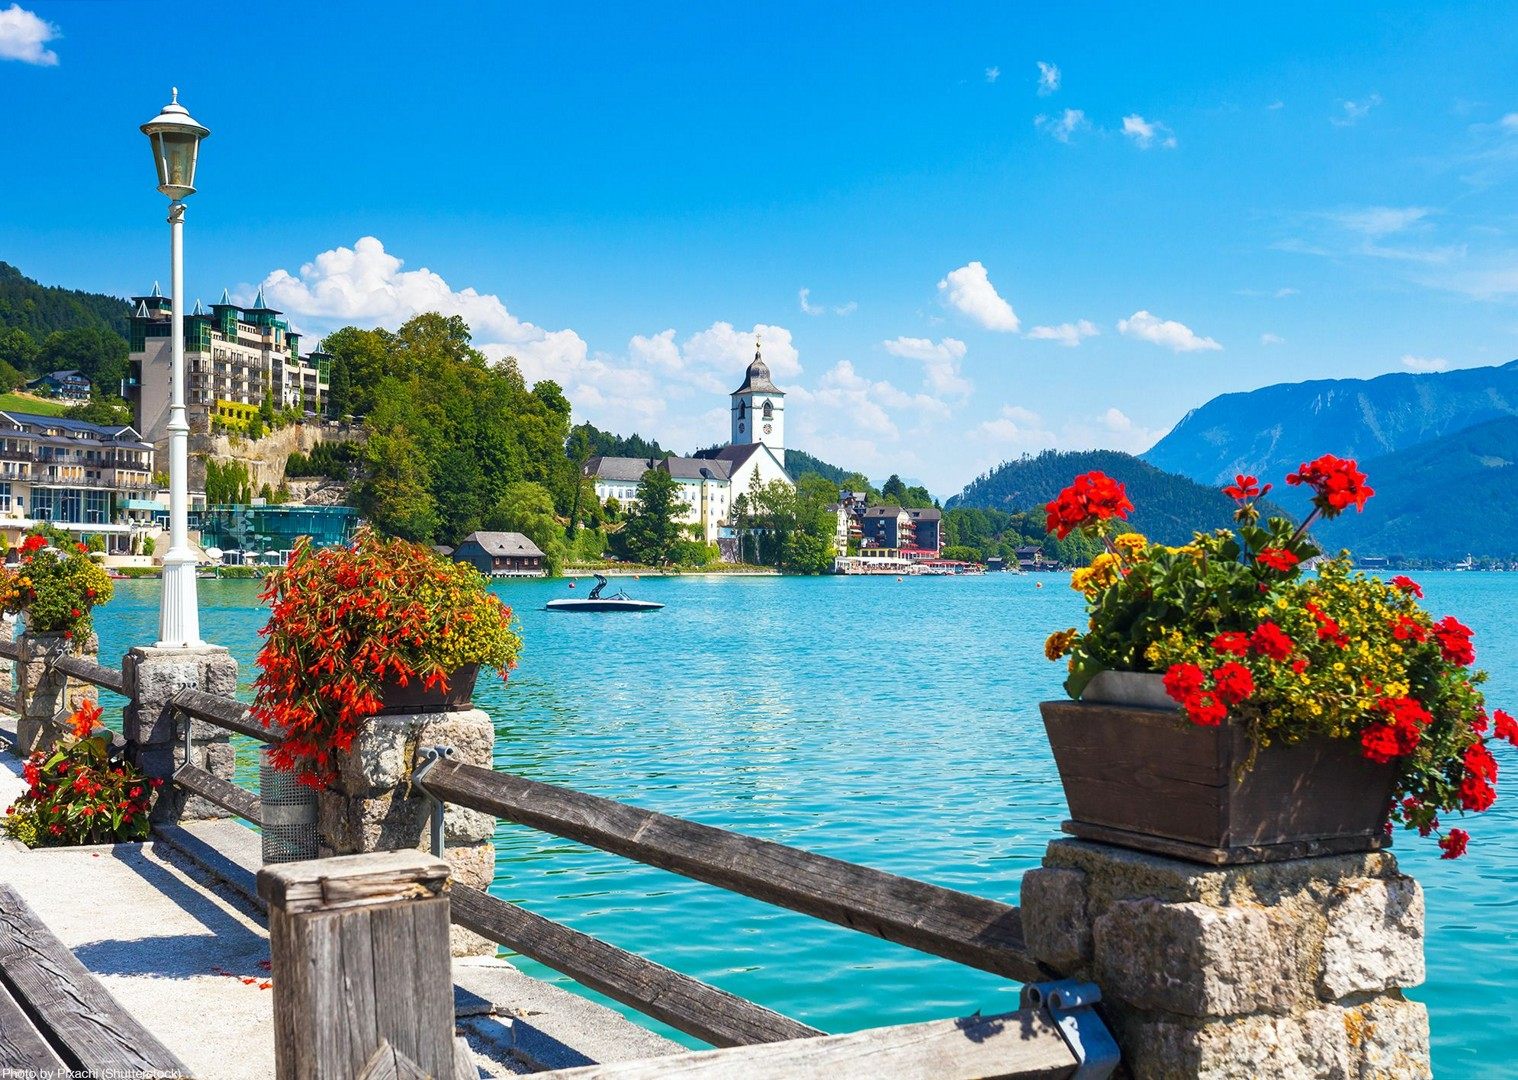 shutterstock_203058256By Pixachi.jpg - Austria - Ten Lakes Tour - Self-Guided Leisure Cycling Holiday - Leisure Cycling